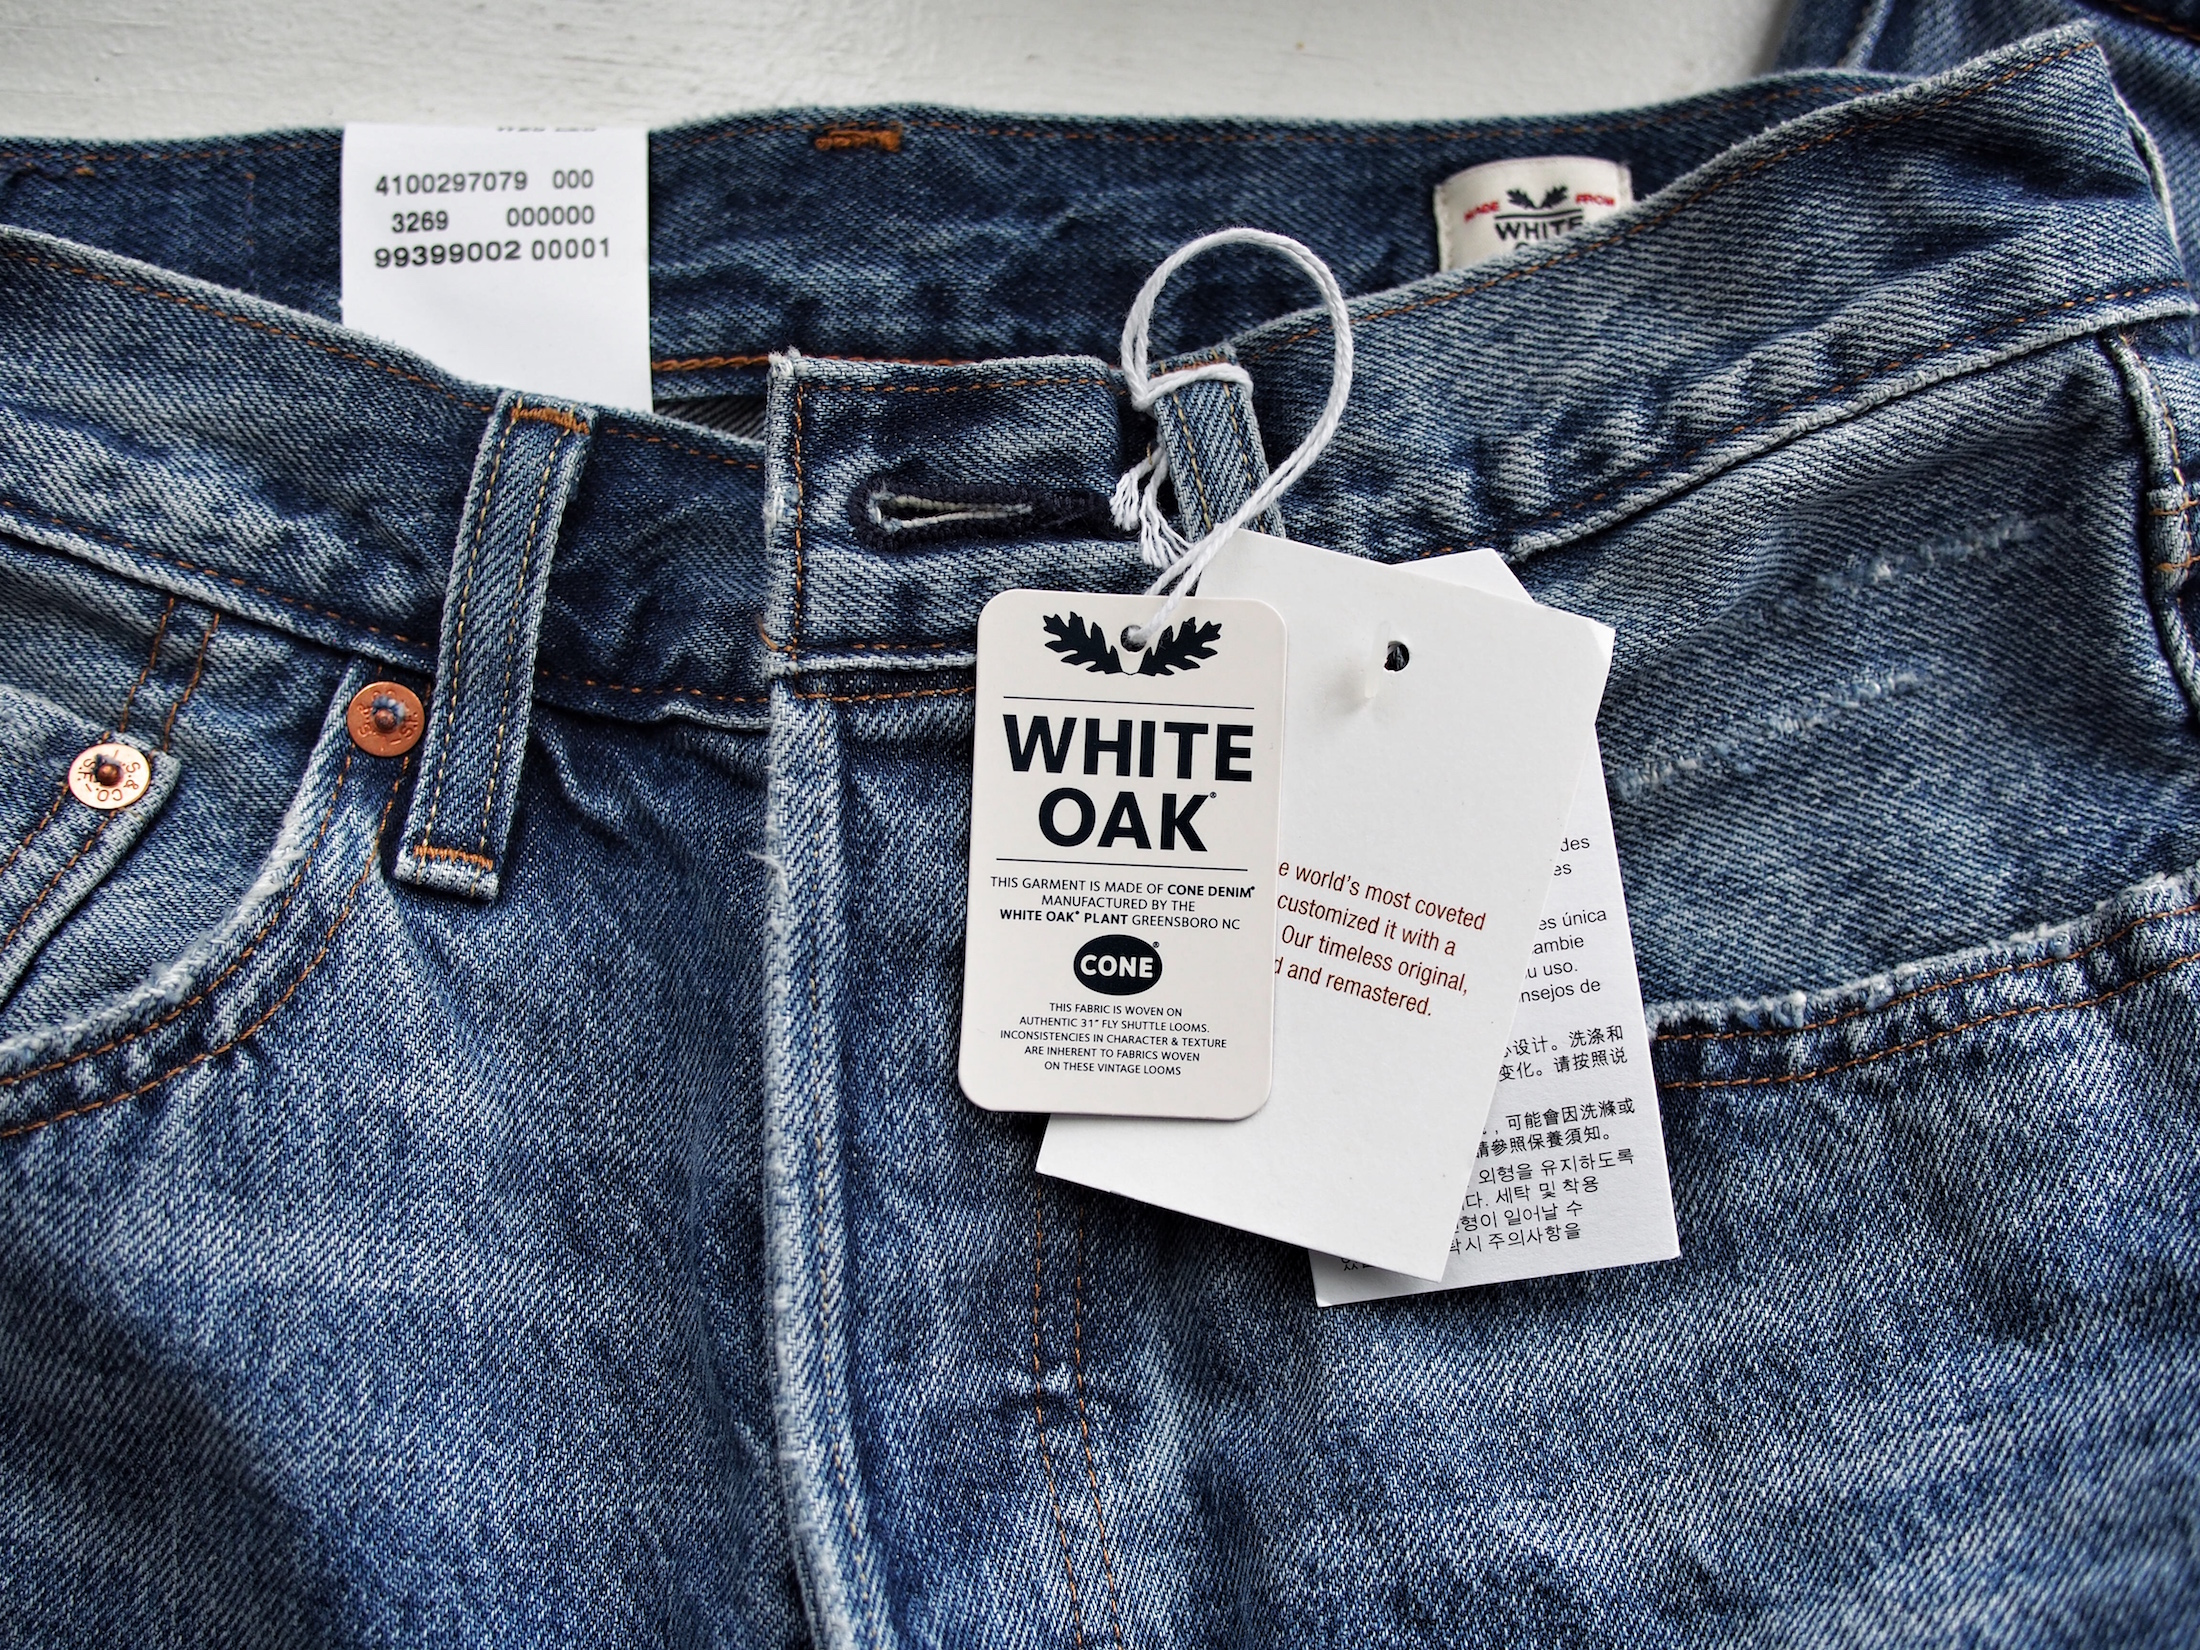 1a1cb72f29b189 'White Oak' means the denim was made in the USA in the White Oak Cone  Mills, which is (or was because unfortunately stopped operations late last  year) the ...